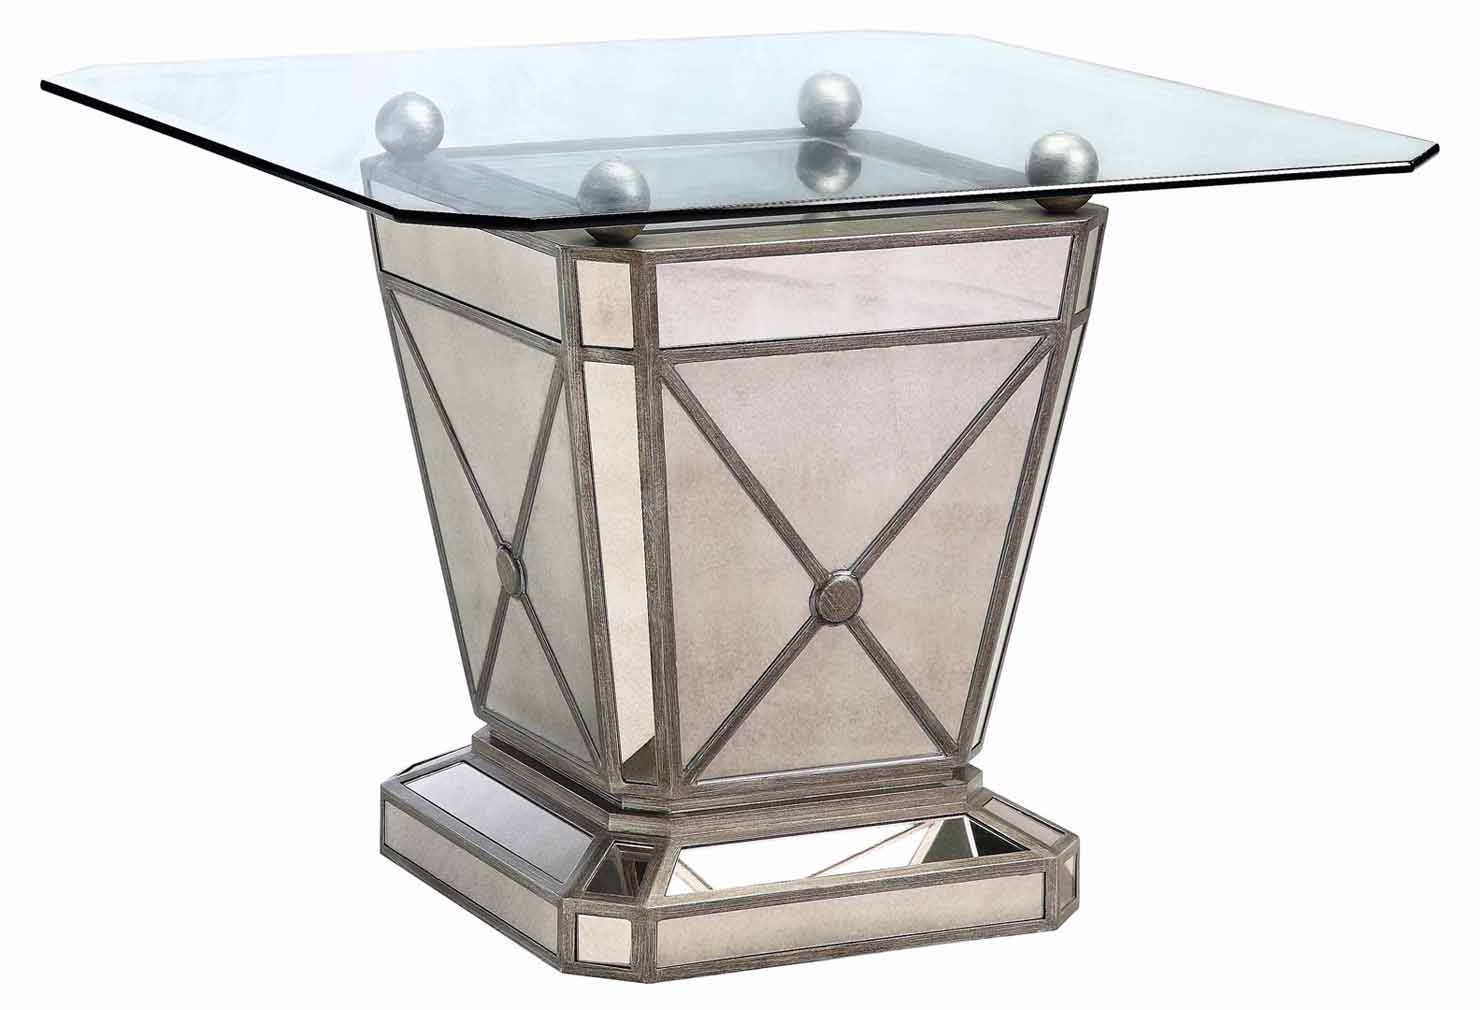 Mirrored Dining Room Table Design